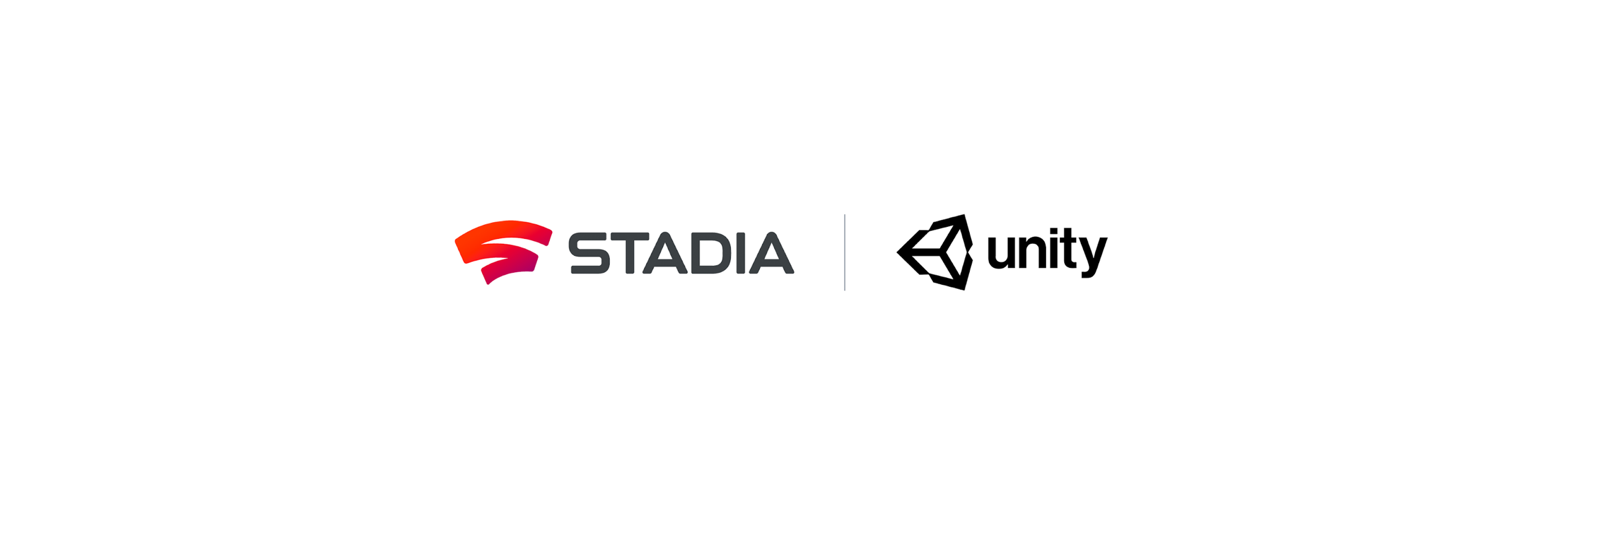 Unity Production-Ready Support for Stadia Now Available Image